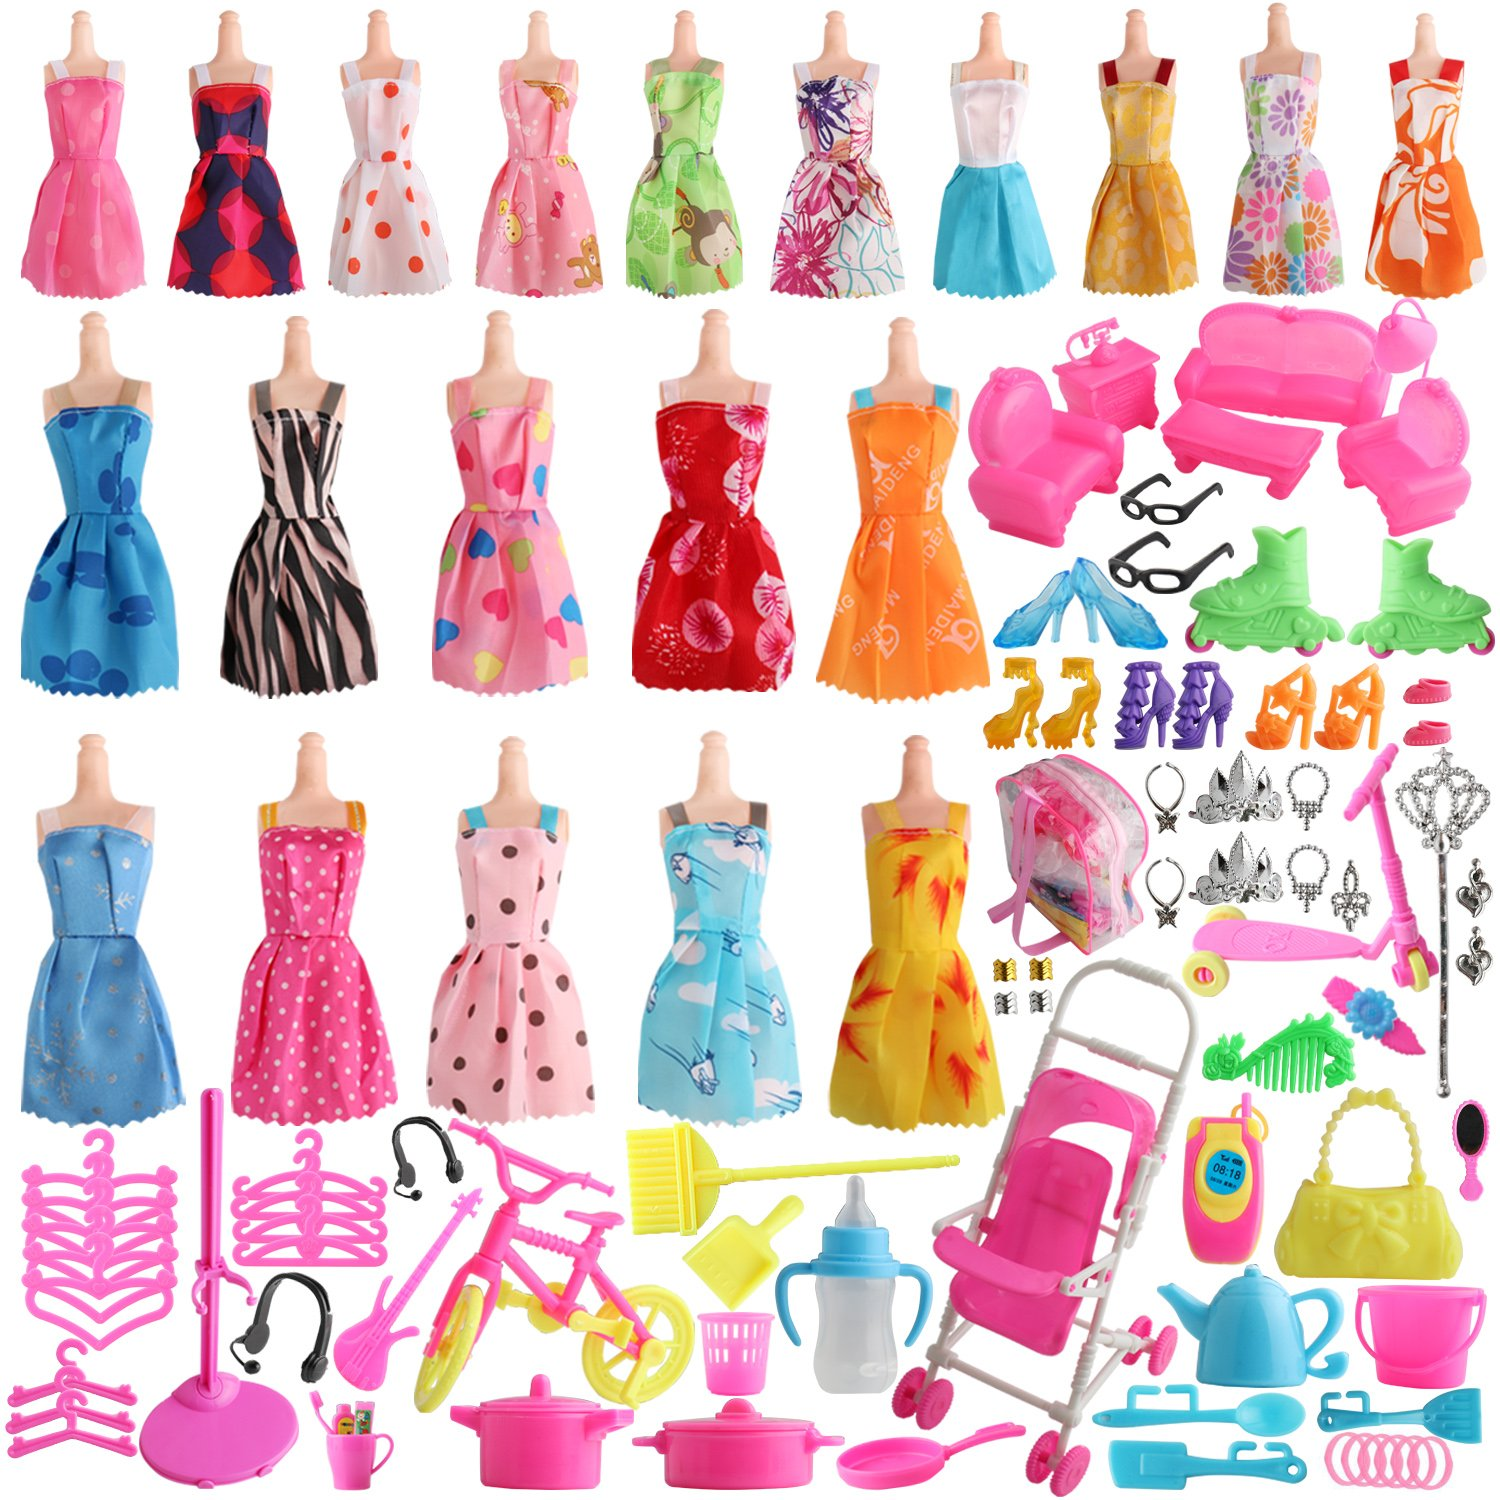 SOTOGO 125 Pieces Doll Clothes Set for Barbie Dolls Include 20 Pieces Clothes Party Grown Outfits and 105 Pieces Different Doll Accessories for Little Girl by SOTOGO